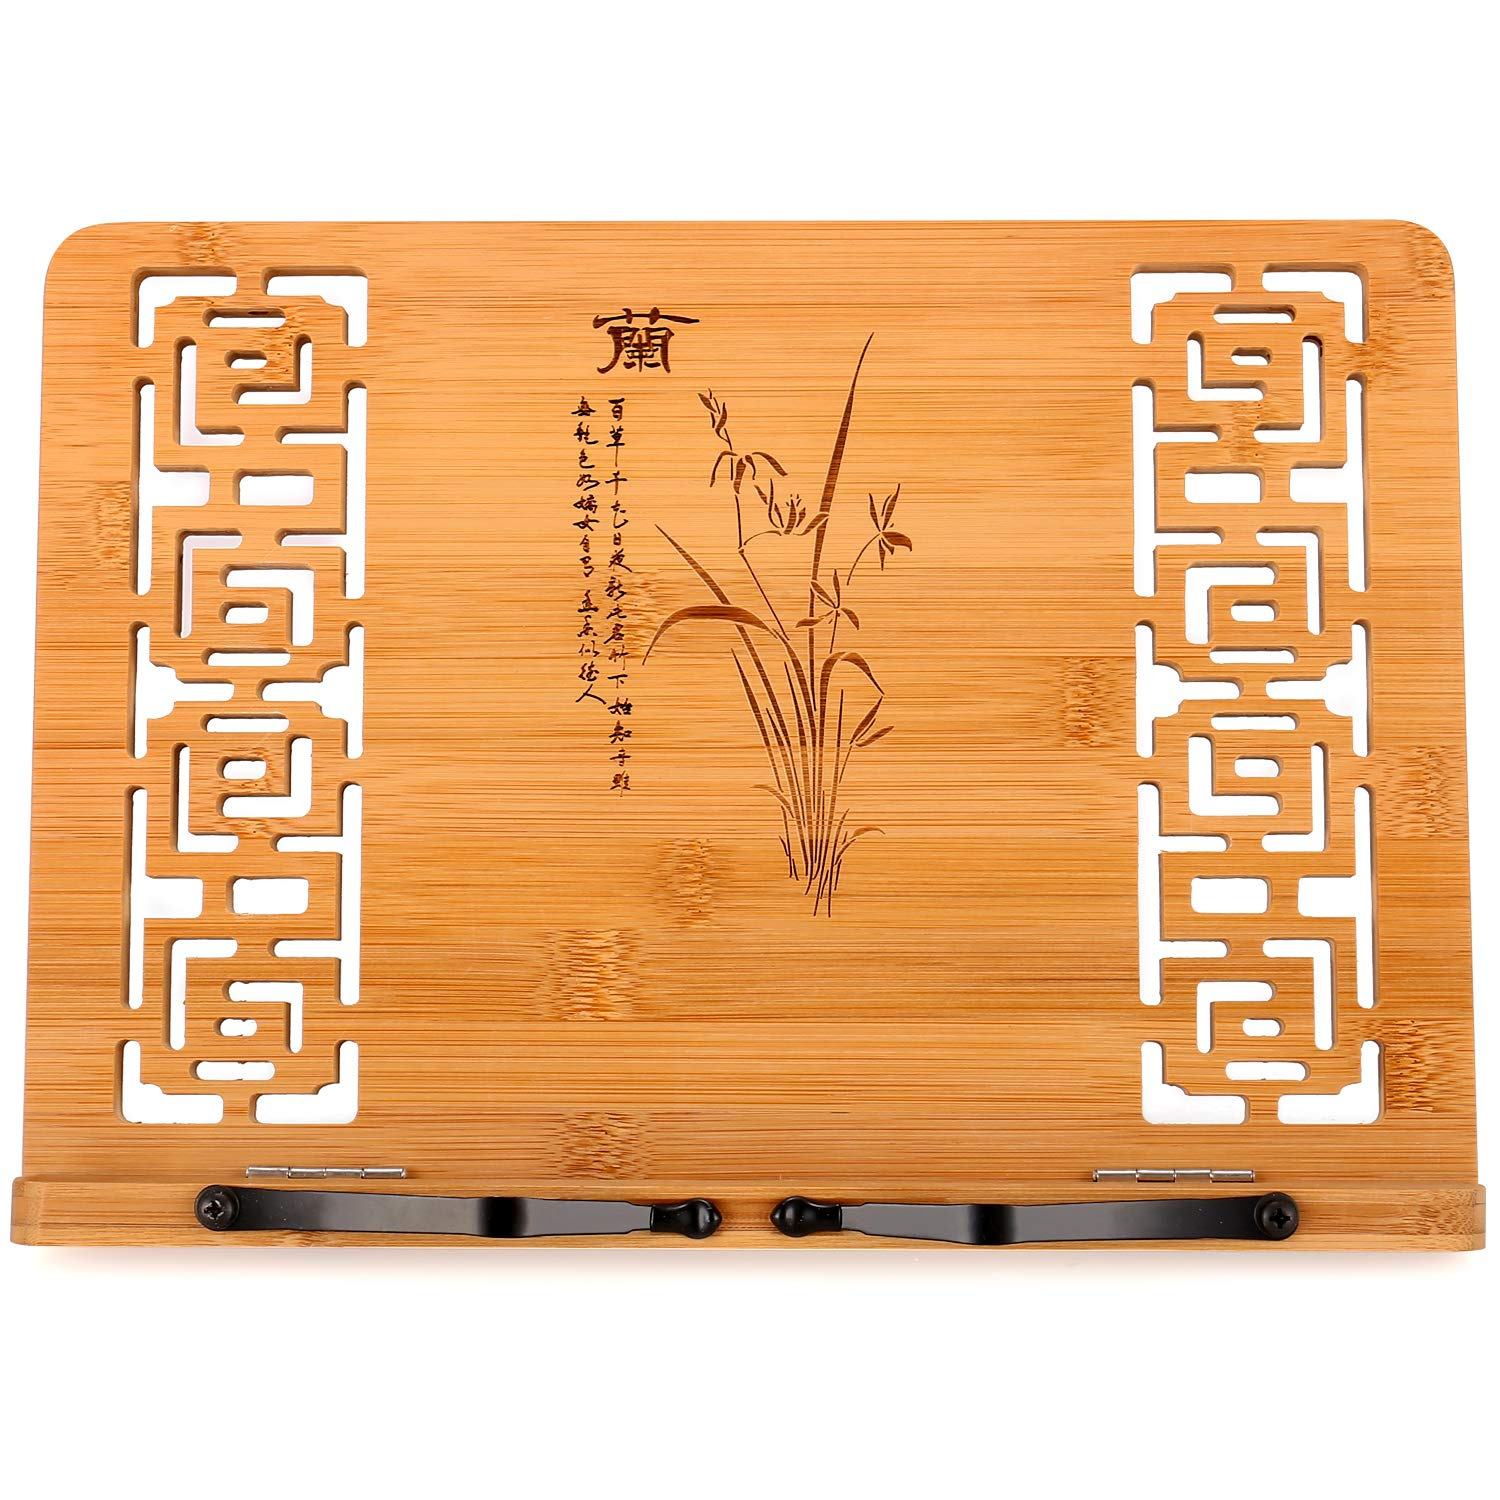 13 x 9.4 inch Buddha Holds Lotus Flower MEGREZ Bamboo Foldable Book Stand Reading Frame Rest Holder Cookbook Cook Stand//iPad Tablet PC Textbook//Music Document Stand//Desk Bookrest with Retro Hollow